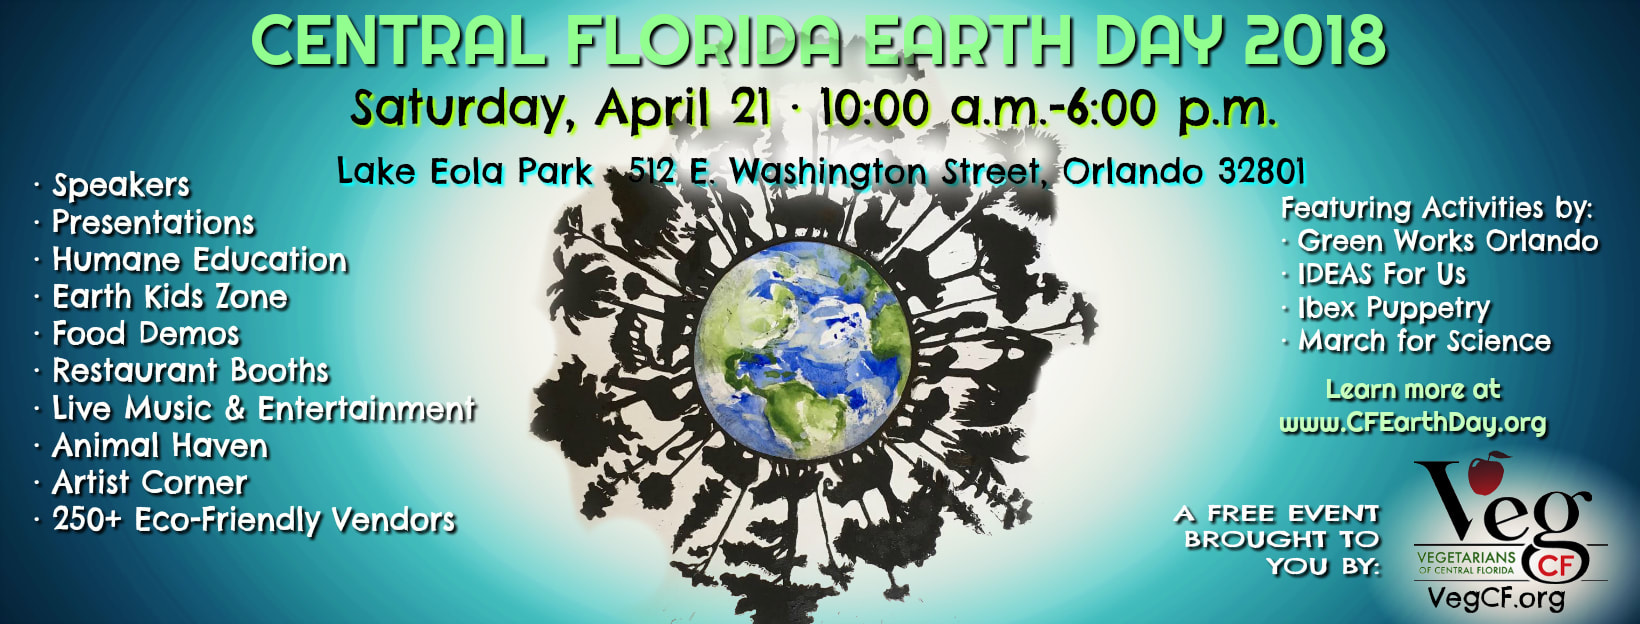 central-florida-earth-day-2018-web-cover_1_orig